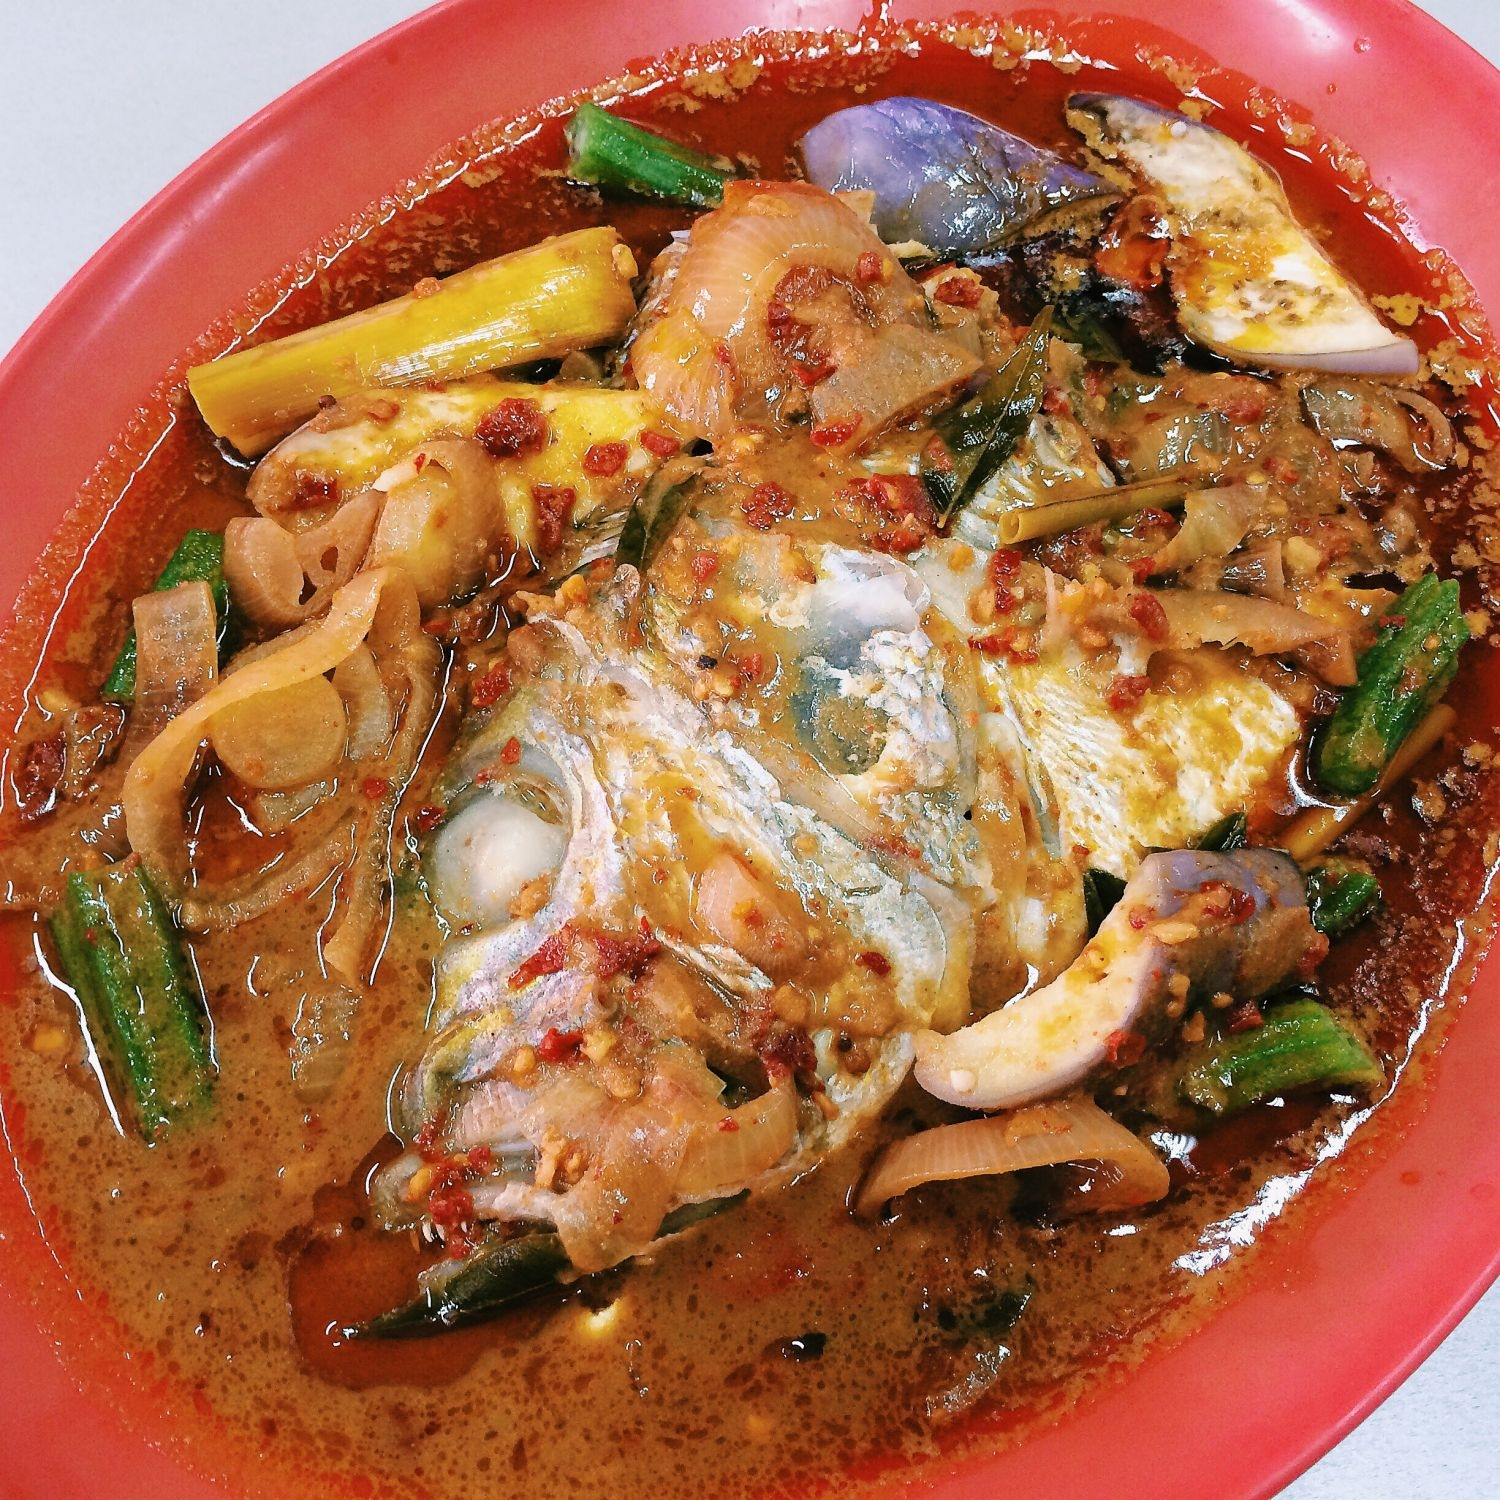 Curry Fish Head - Lau Hock Guan Kee Bak Kut Teh & Curry Fish Head